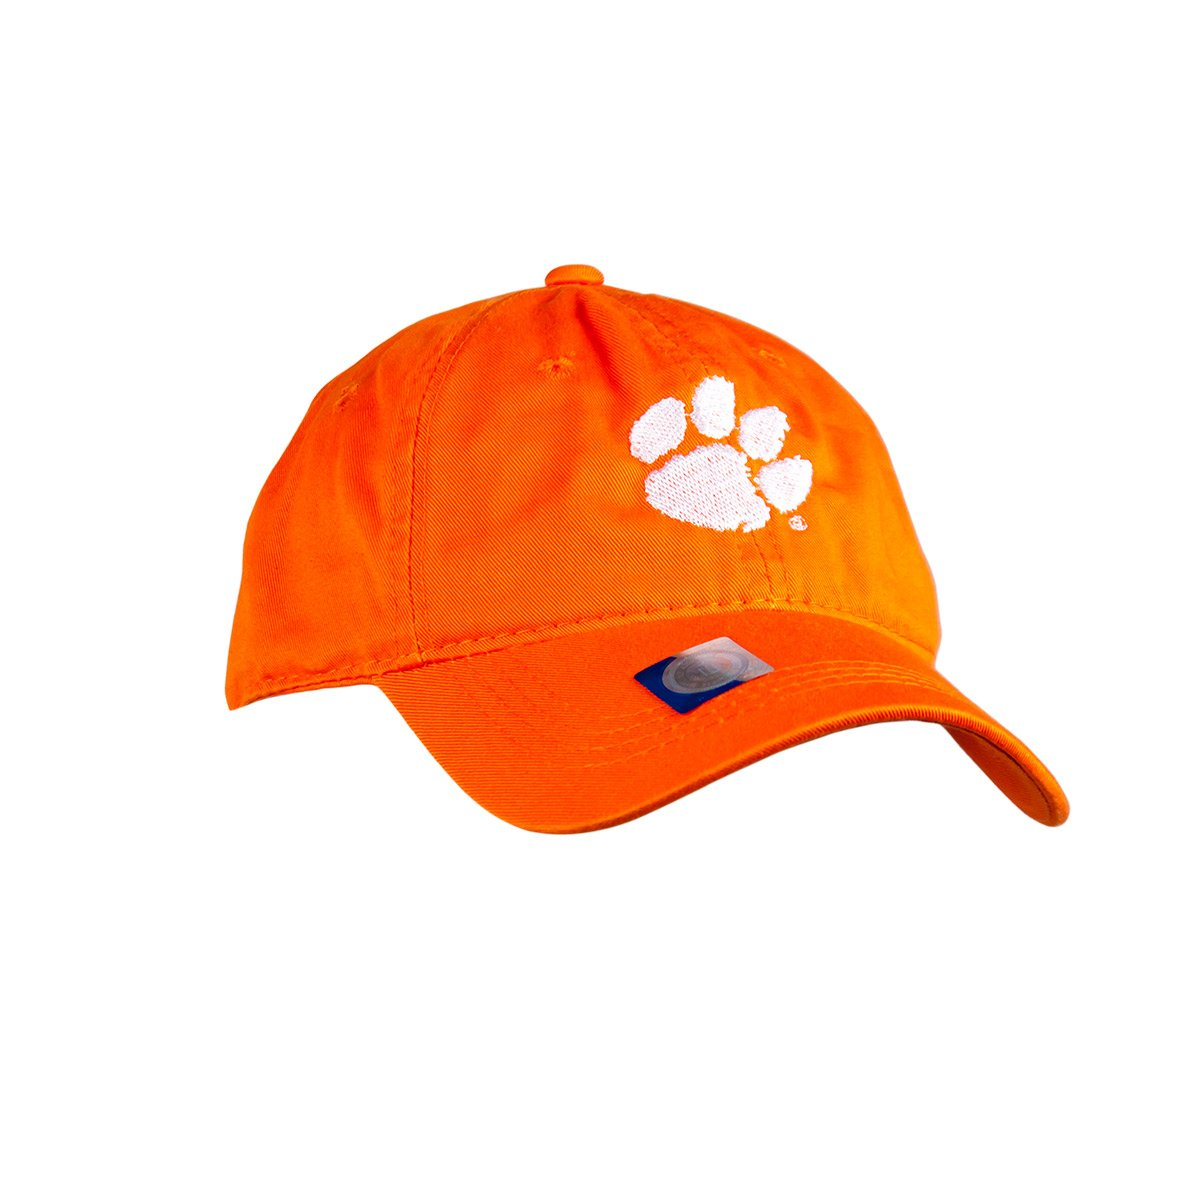 1101e43112ac9 coupon code for orange clemson hat c18a5 51f79